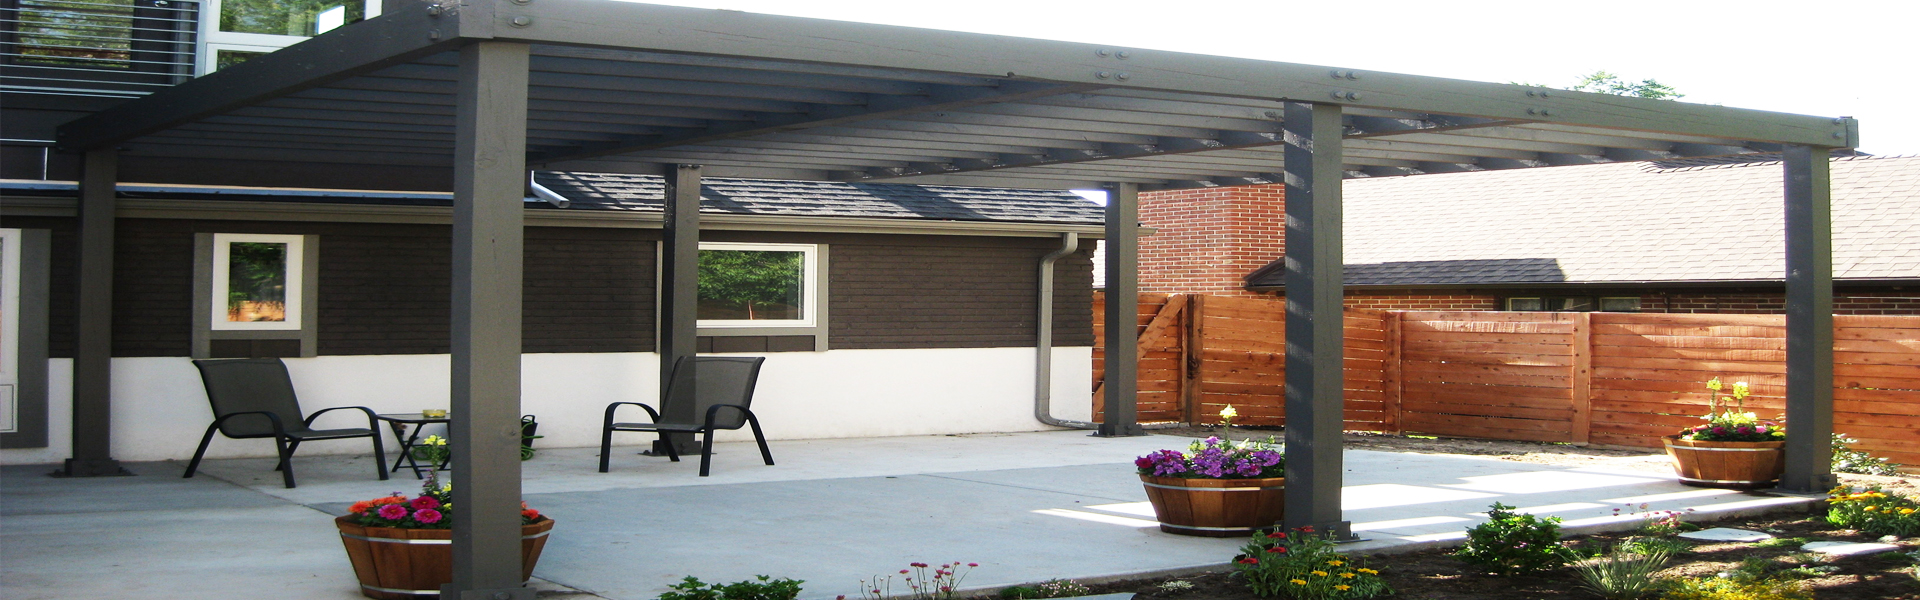 <h2>Shading systems ideas and solutions</h2><p>Pergolas, capotines, canvas, jelatines, special constructions</p><div class='bgslideshowmore'><a href='http://www.tenteshalkidiki.4ty.gr/more2.php?l=en&id=7557' >More...</a></div>